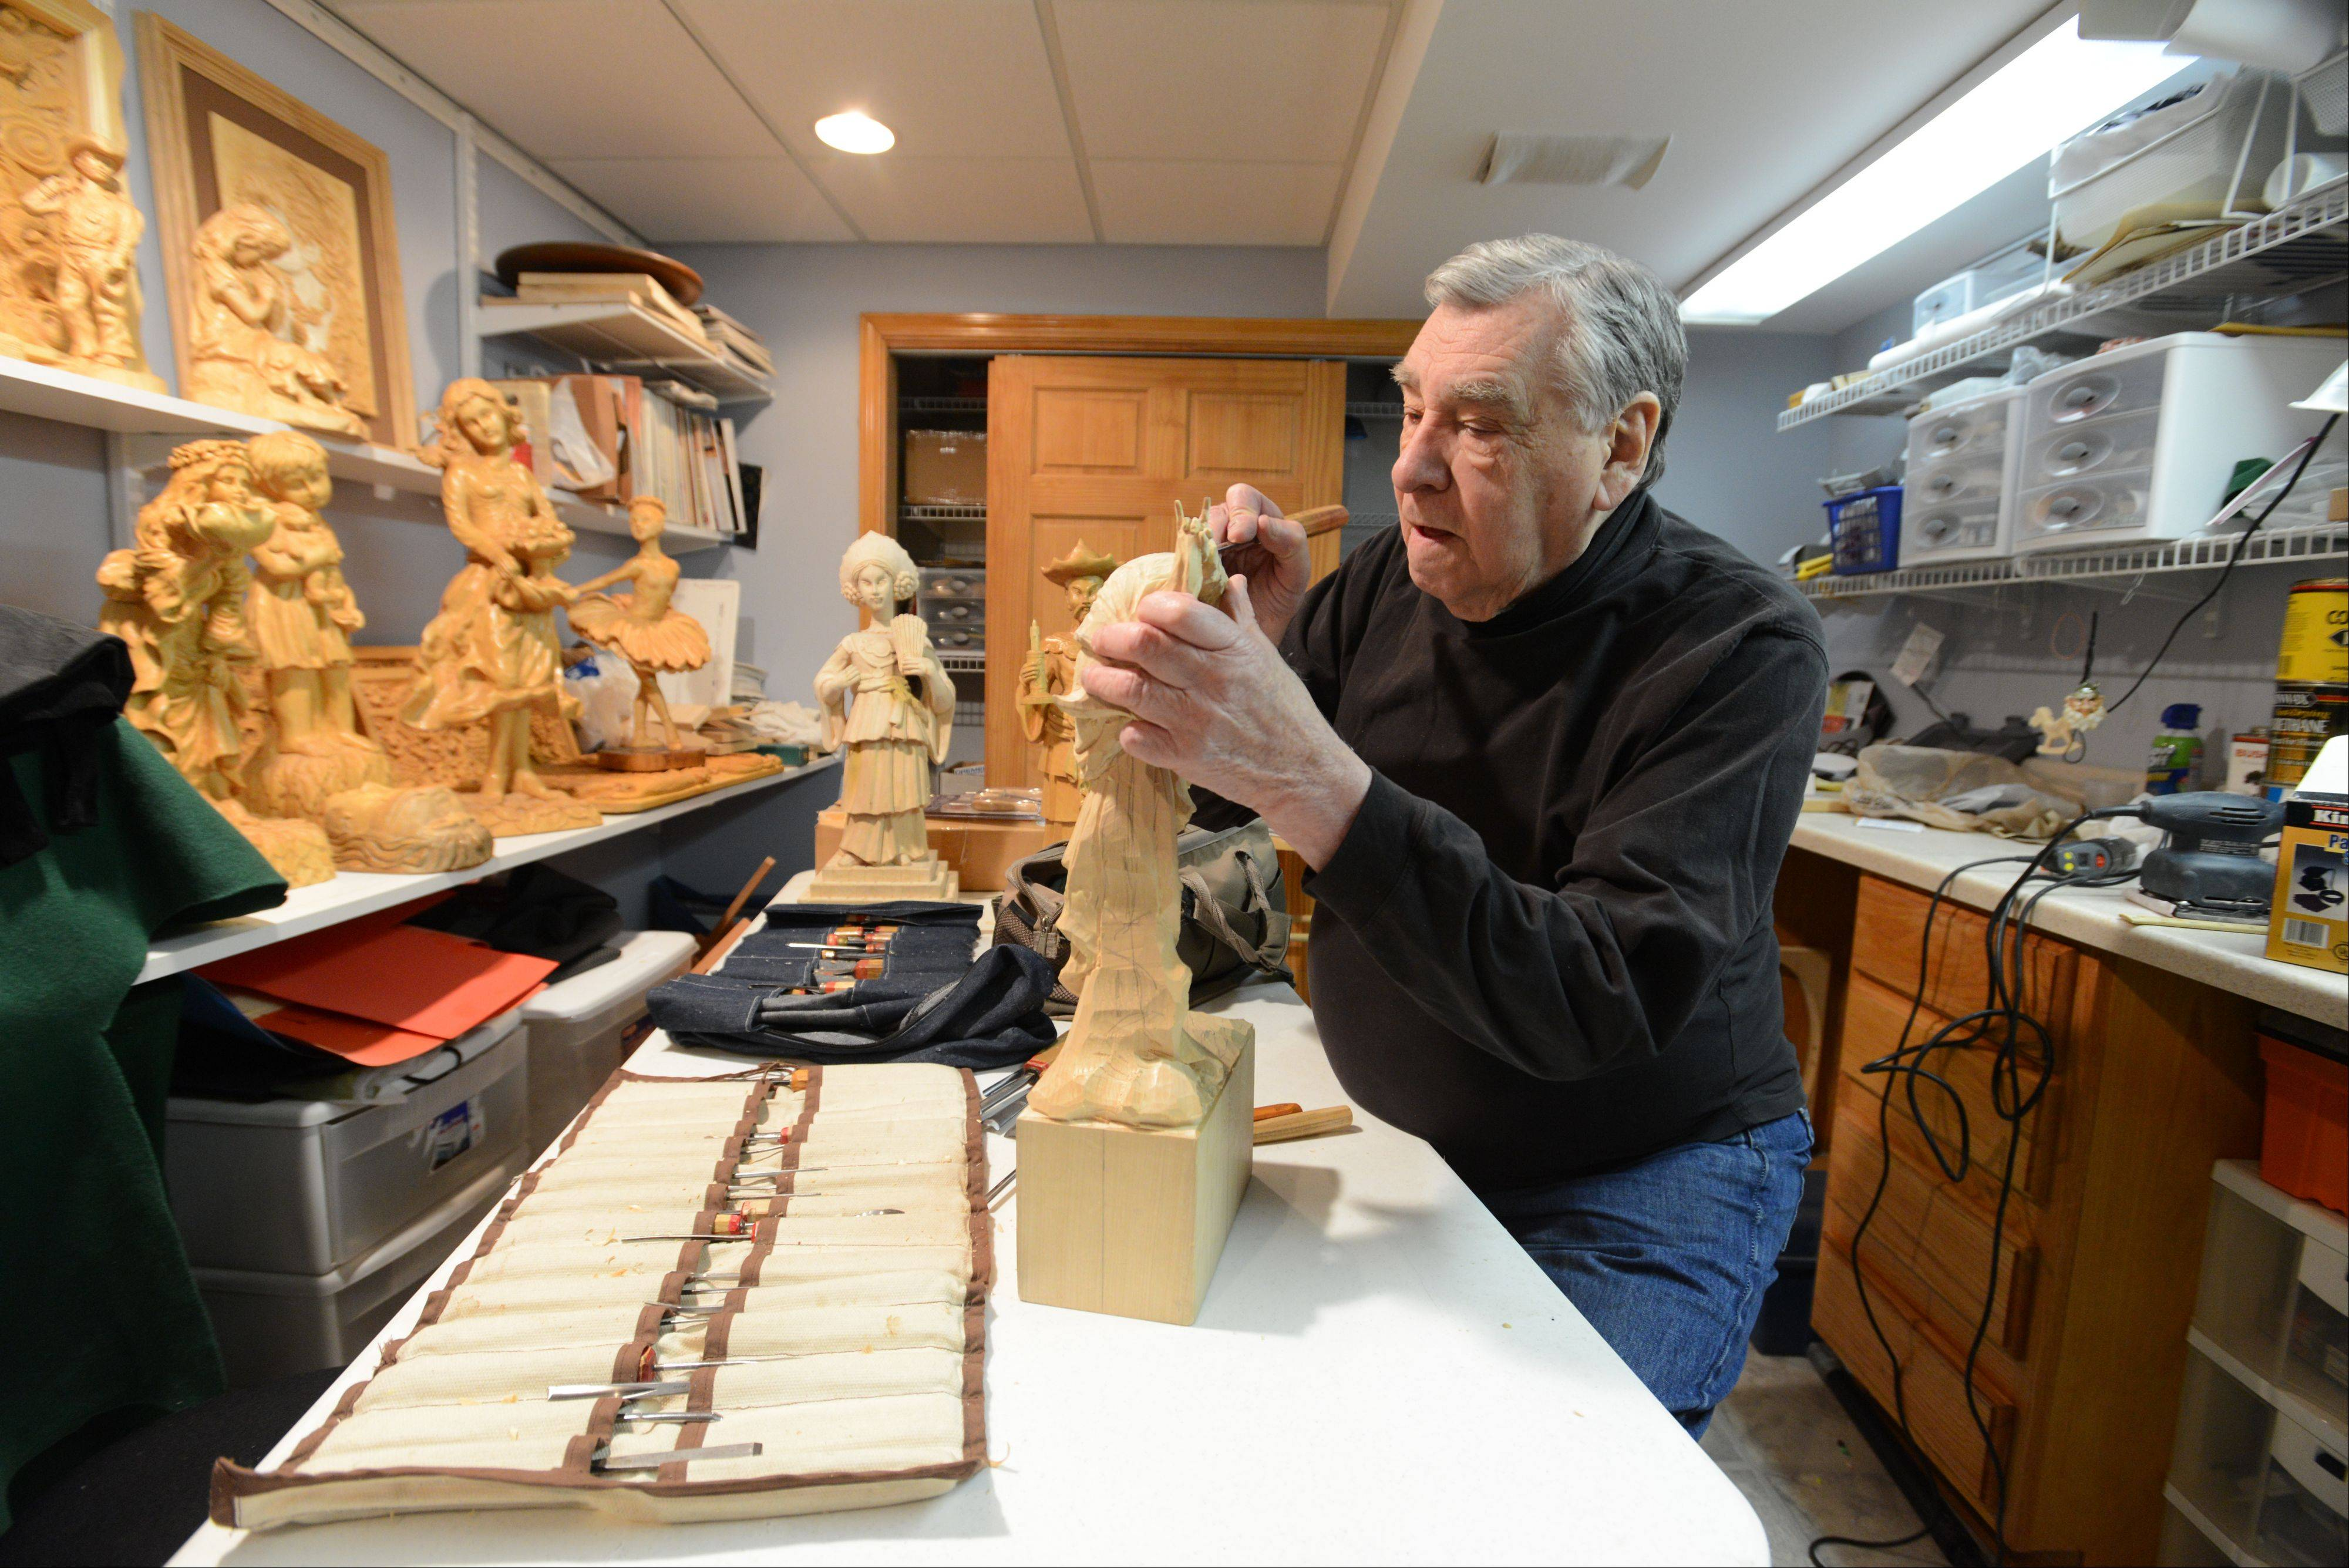 Shelly Weiser, 85, of Naperville has been wood carving for 10 years now. He started after visiting a local wood carving show, and now enjoys carving human and animal figures.